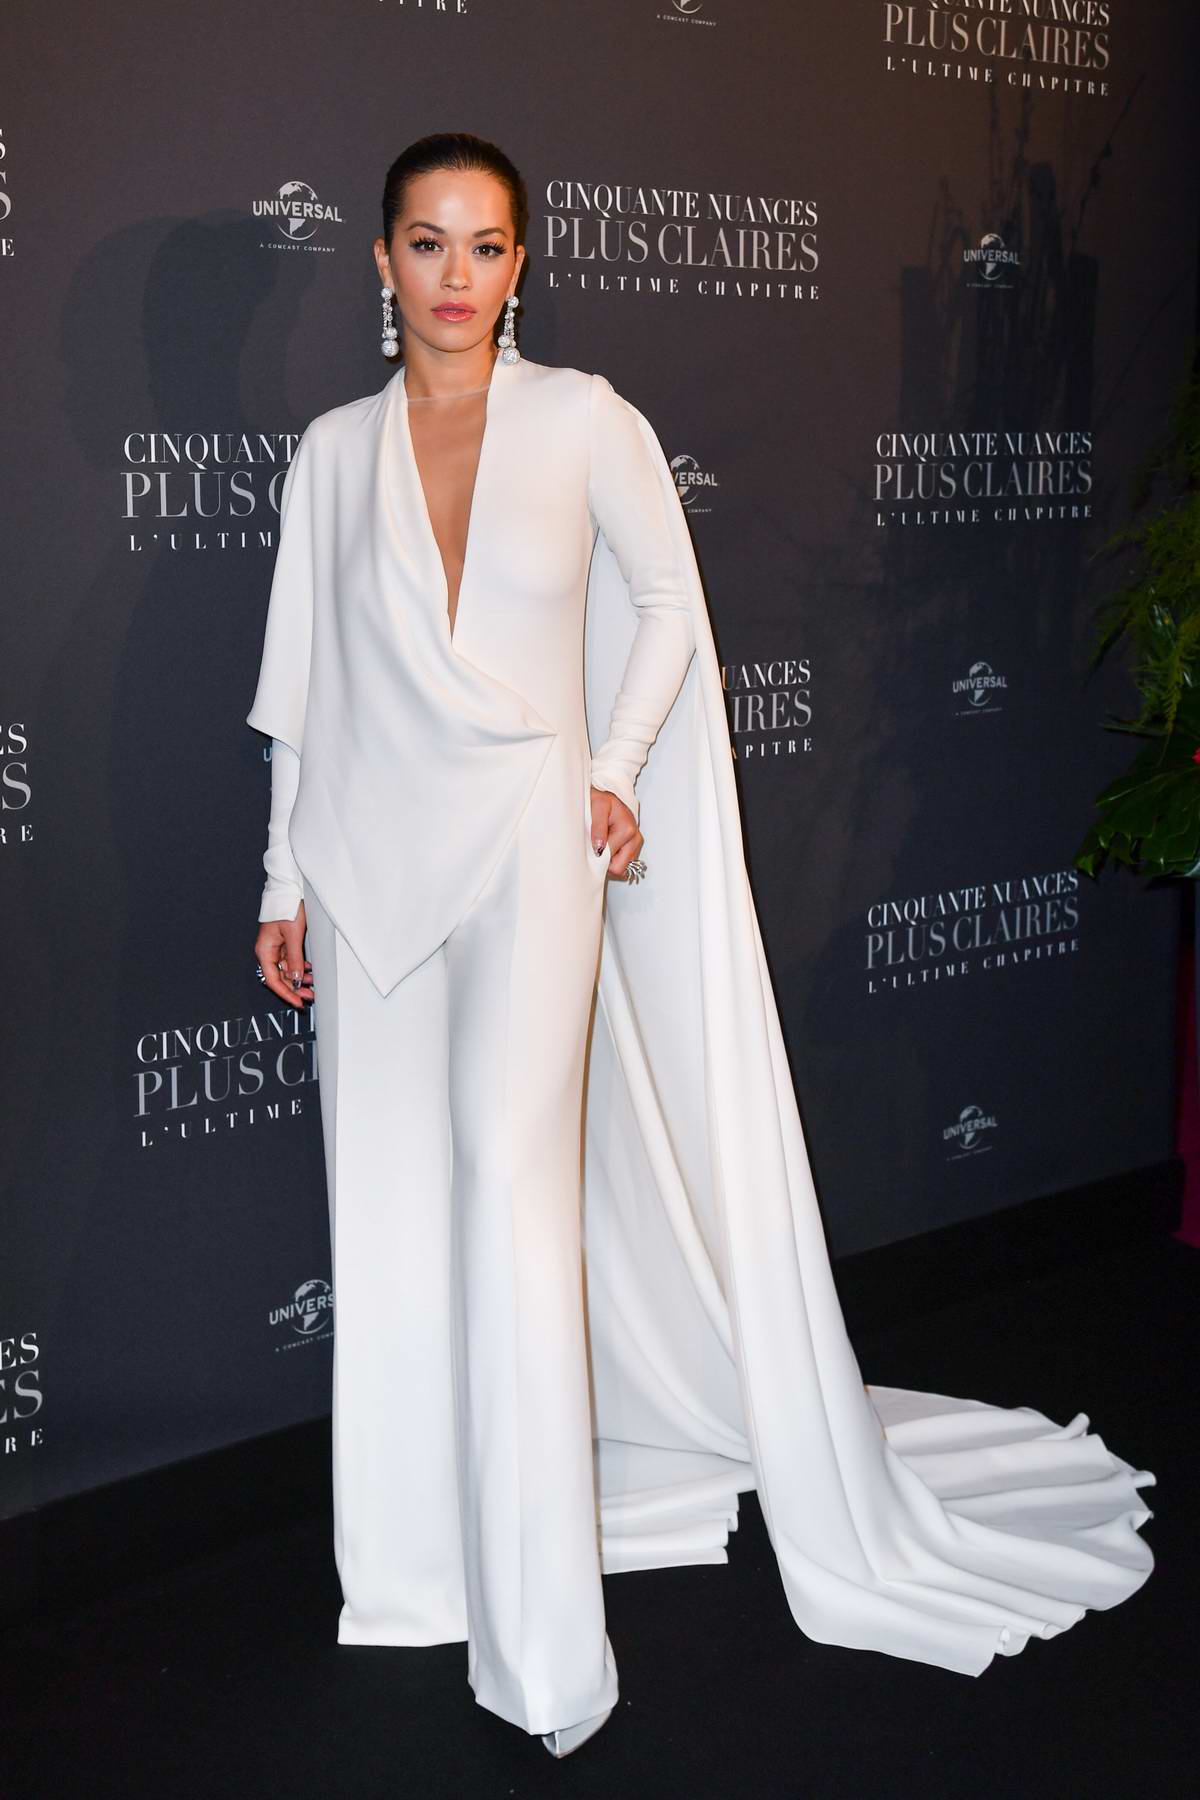 Rita Ora attends 'Fifty Shades Freed' premiere at Salle Pleyel in Paris, France